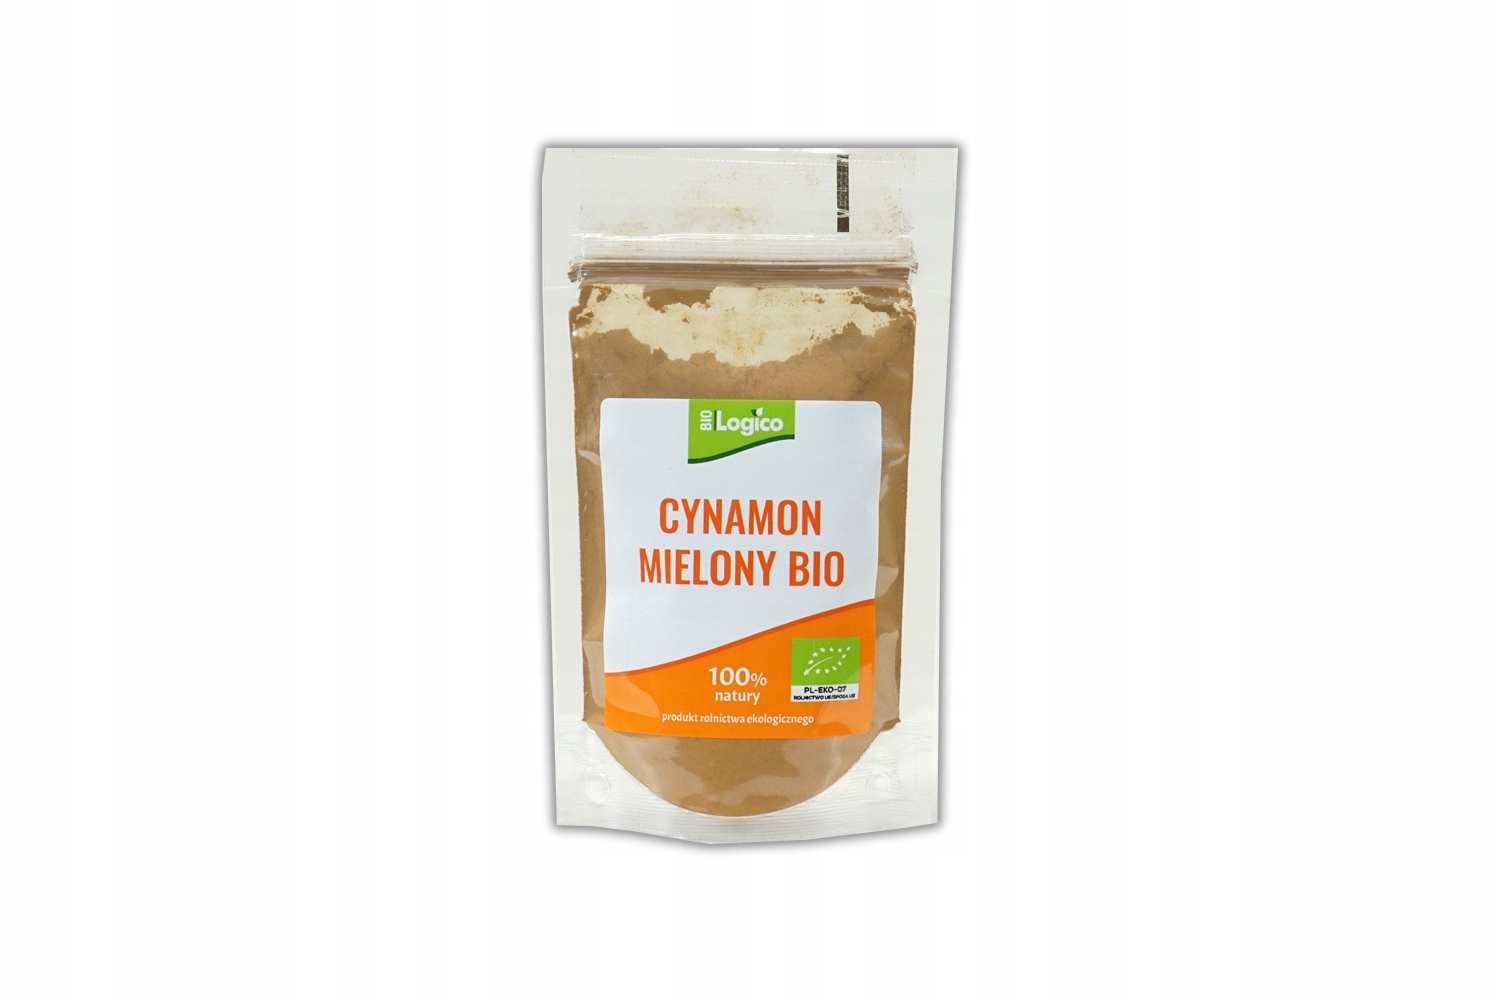 CYNAMON MIELONY BIO 50G BIOLOGICO